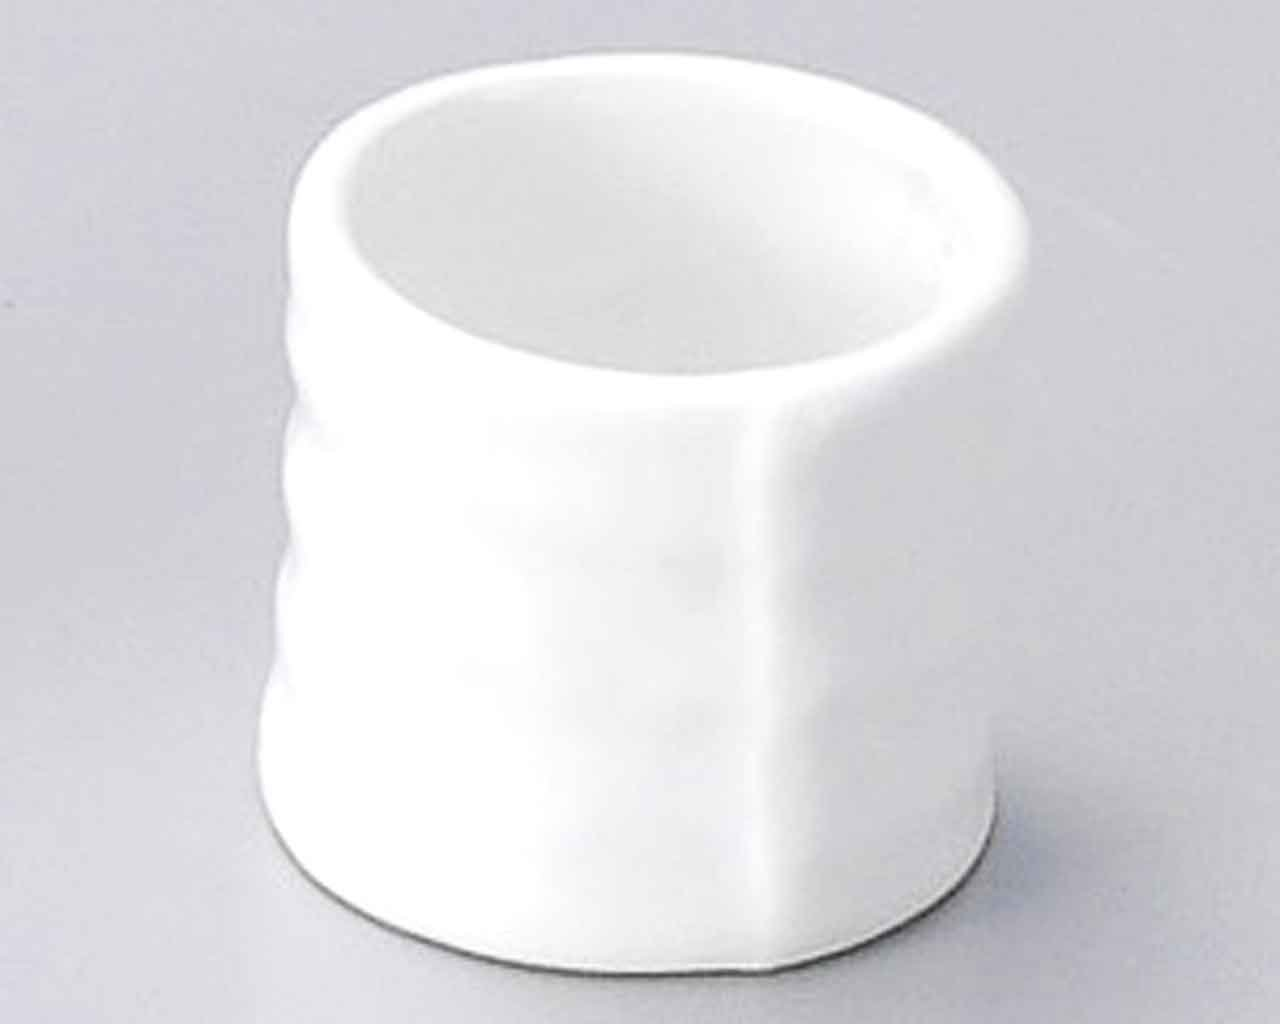 Hakuji 1.8inch Set of 5 Toothpick holders White porcelain Made in Japan by Watou.asia